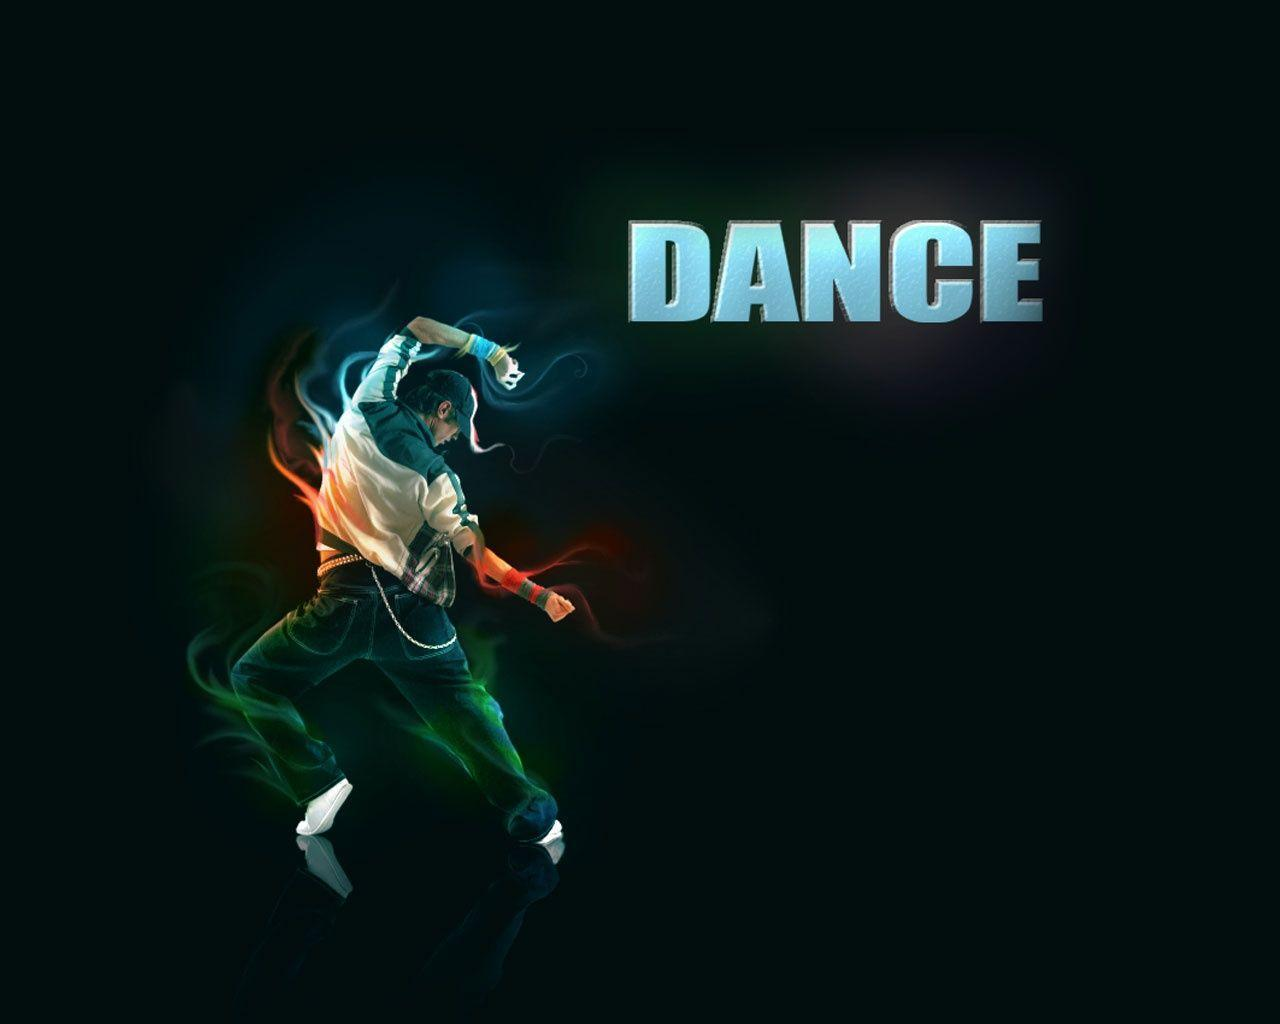 Wallpapers For > Desktop Backgrounds Hd Dance